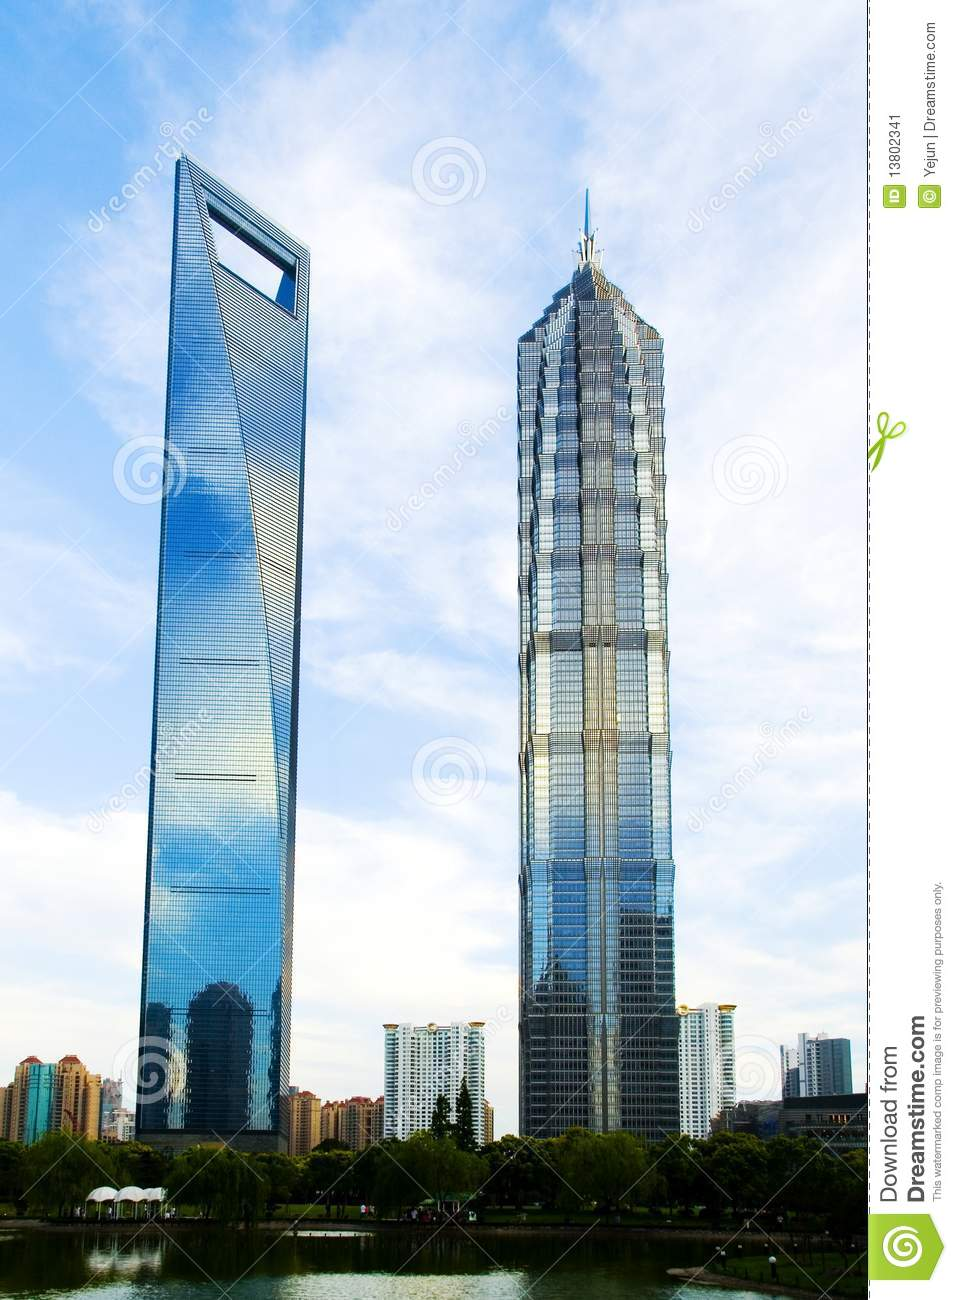 SWFC And Jin Mao Tower Stock Image - Image: 13802341